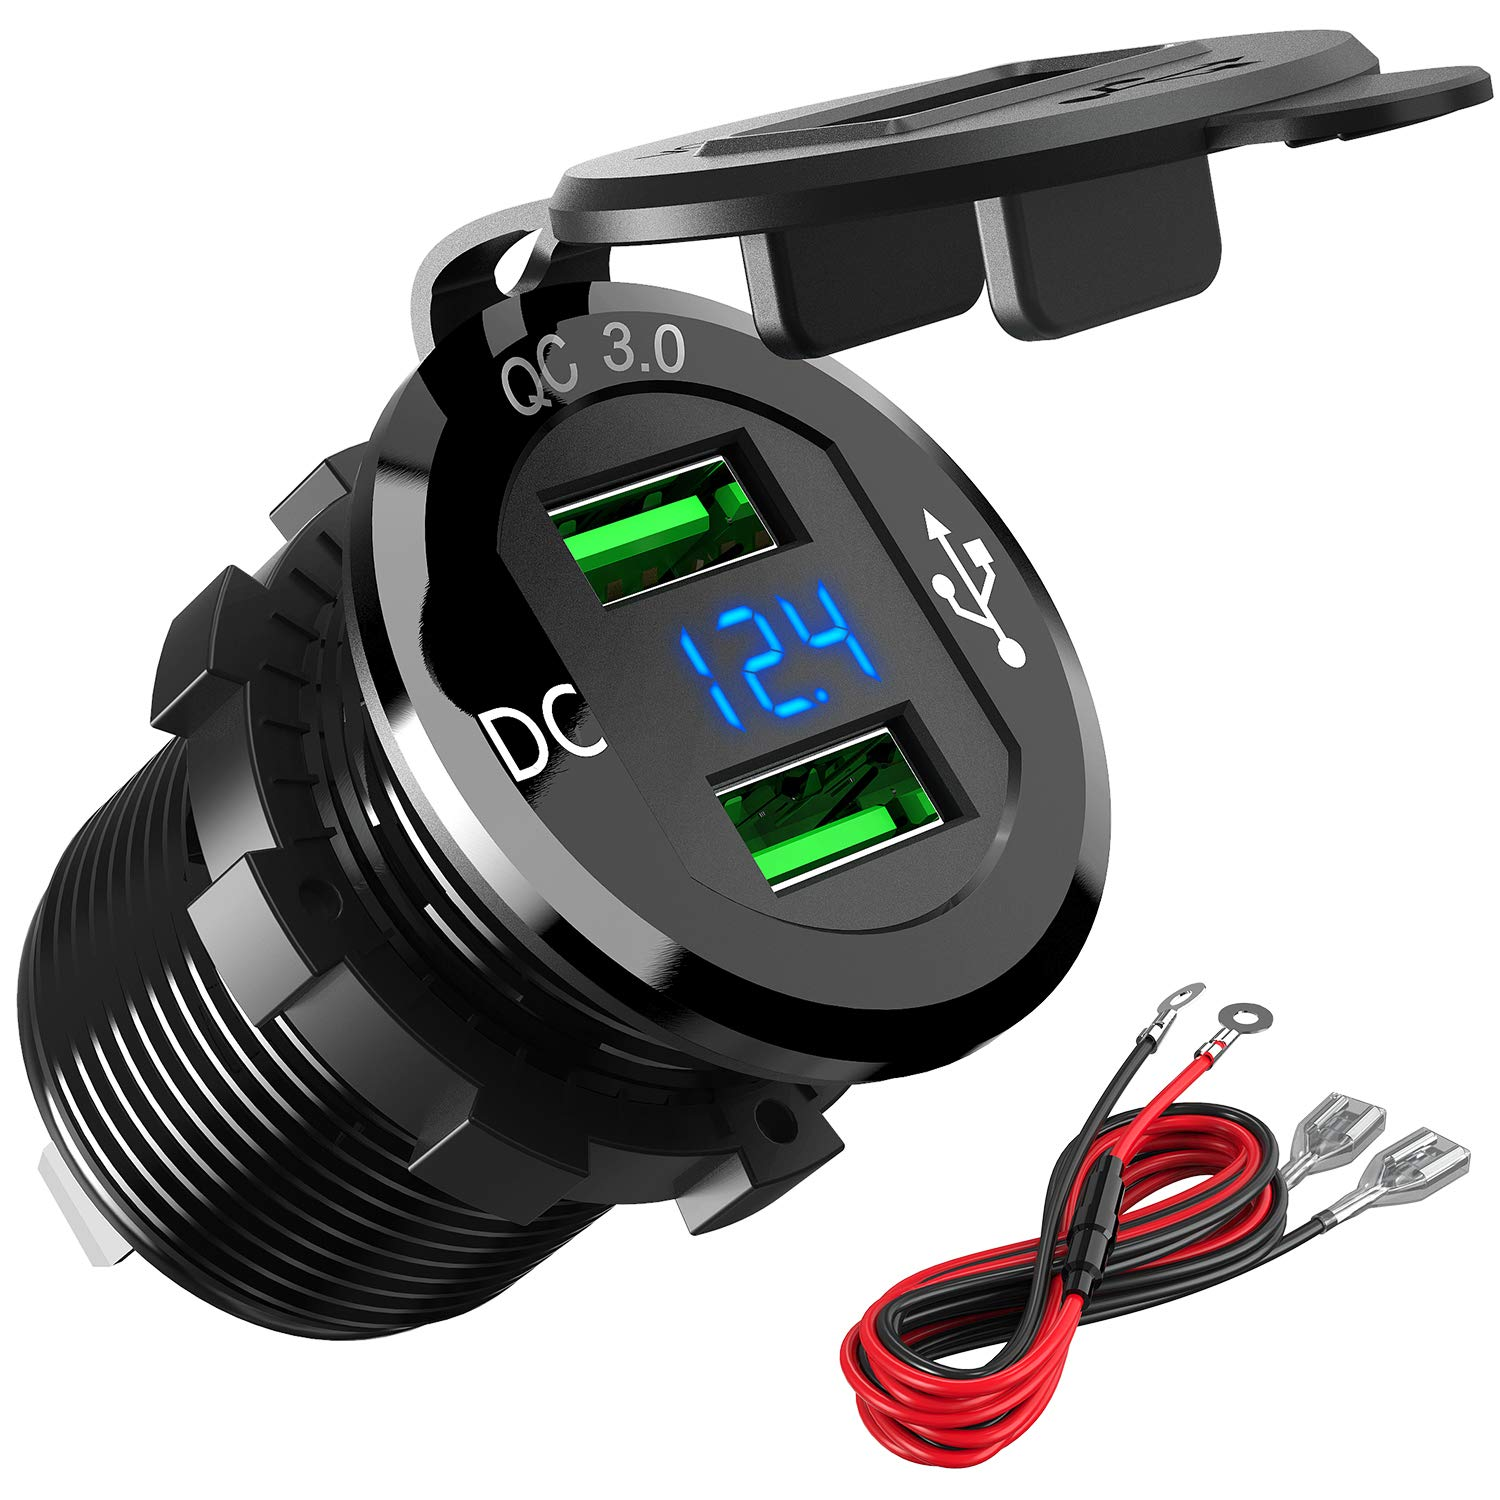 Quick Charge 3.0 Car Charger, Higoing 12V/24V 36W Aluminum Waterproof Dual QC3.0 USB Fast Charger Socket Power Outlet Adapter LED Digital Voltmeter& ...